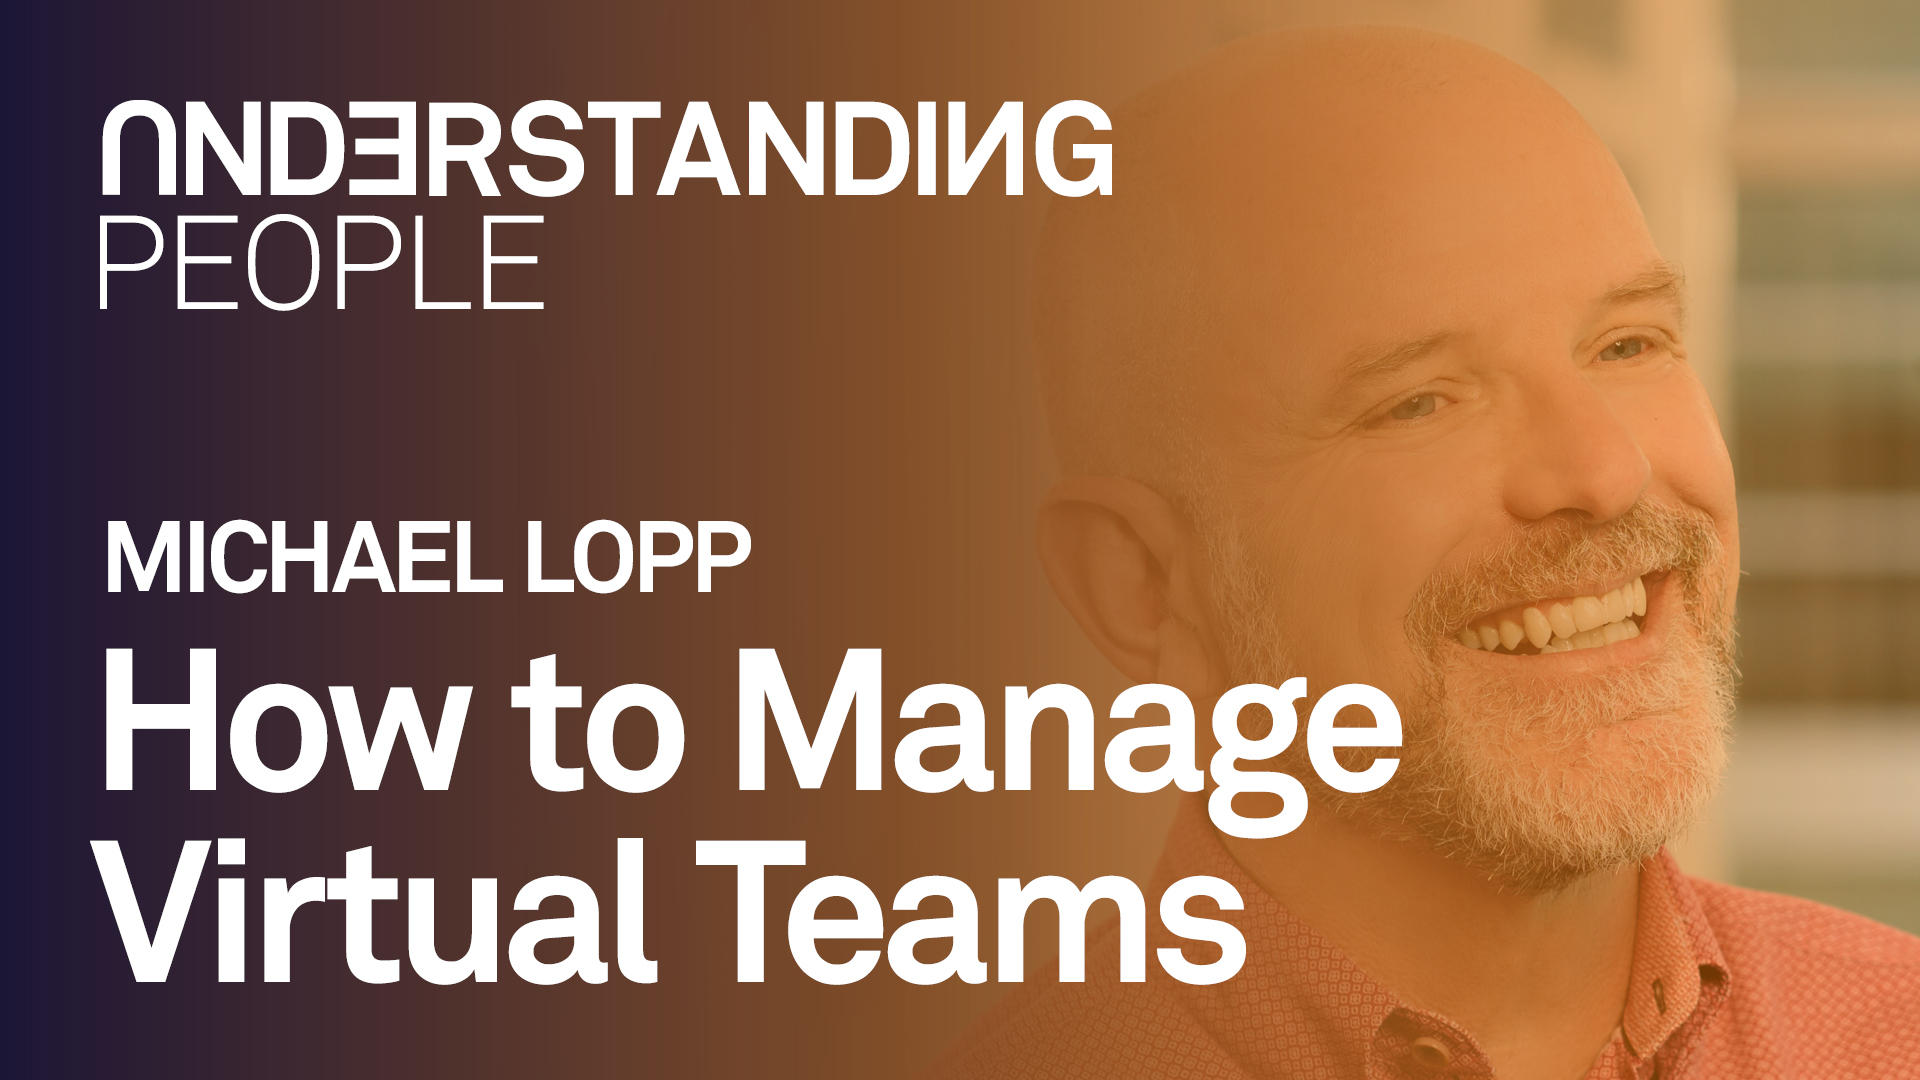 #gettogether: How to Manage Virtual Teams